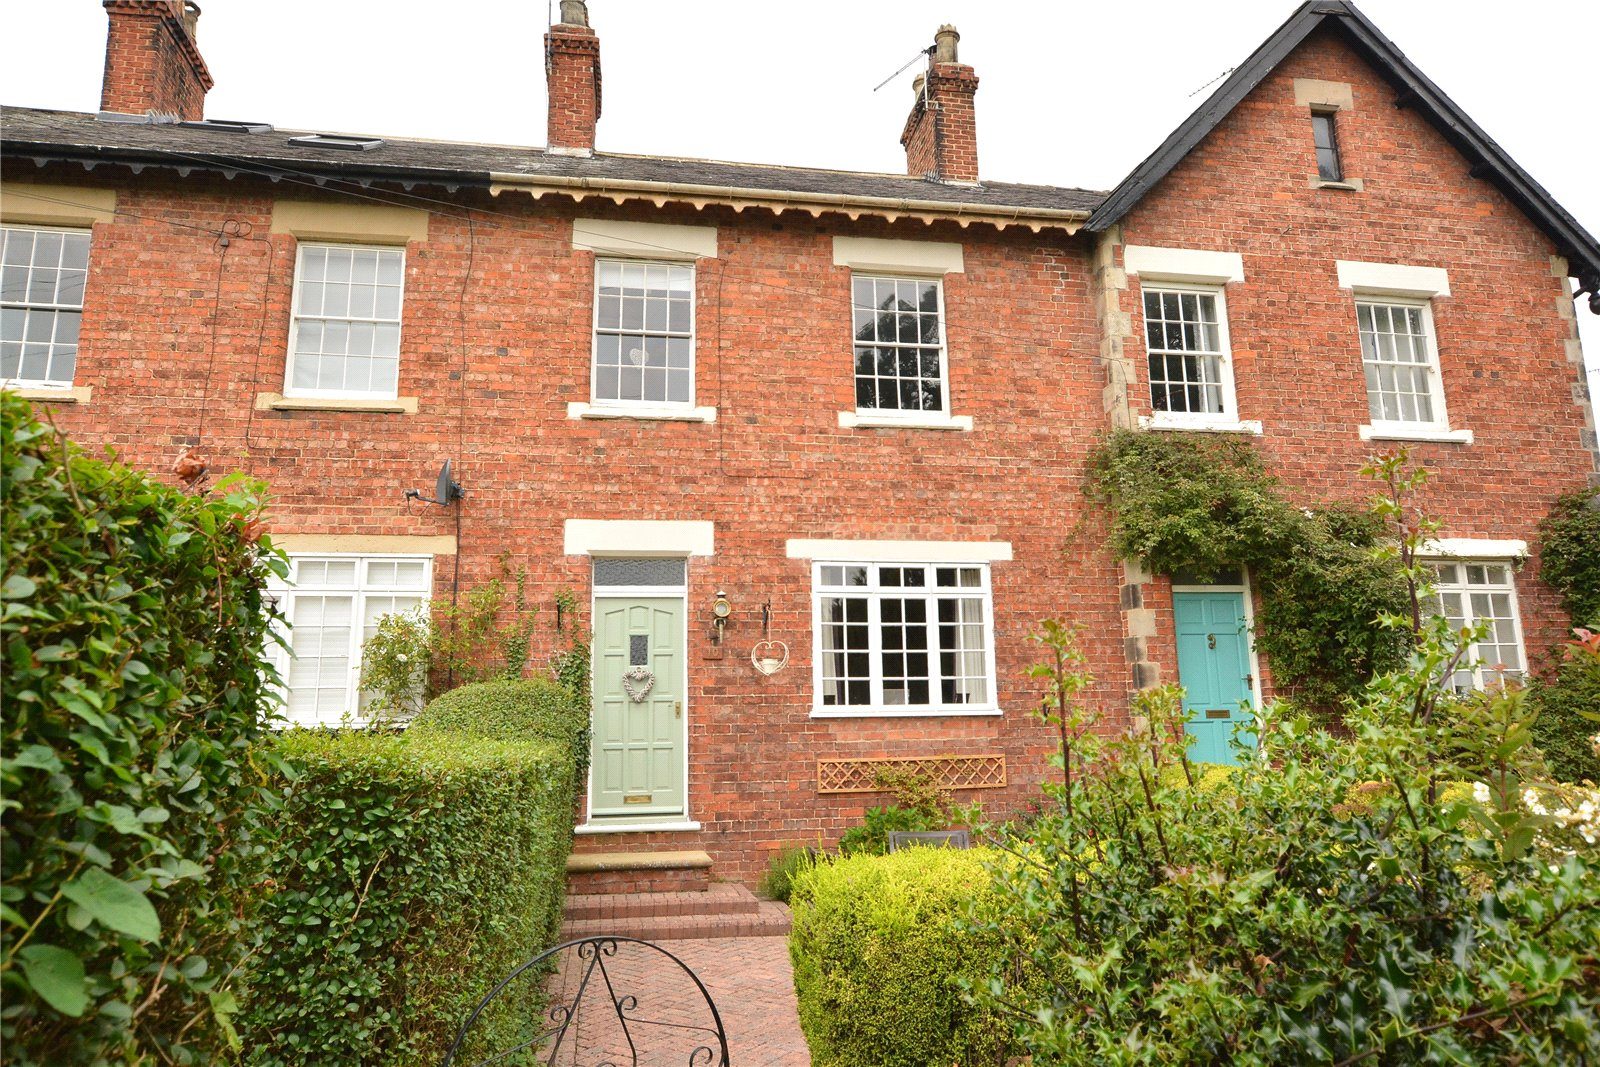 Property for sale in Wetherby, exterior terraced house